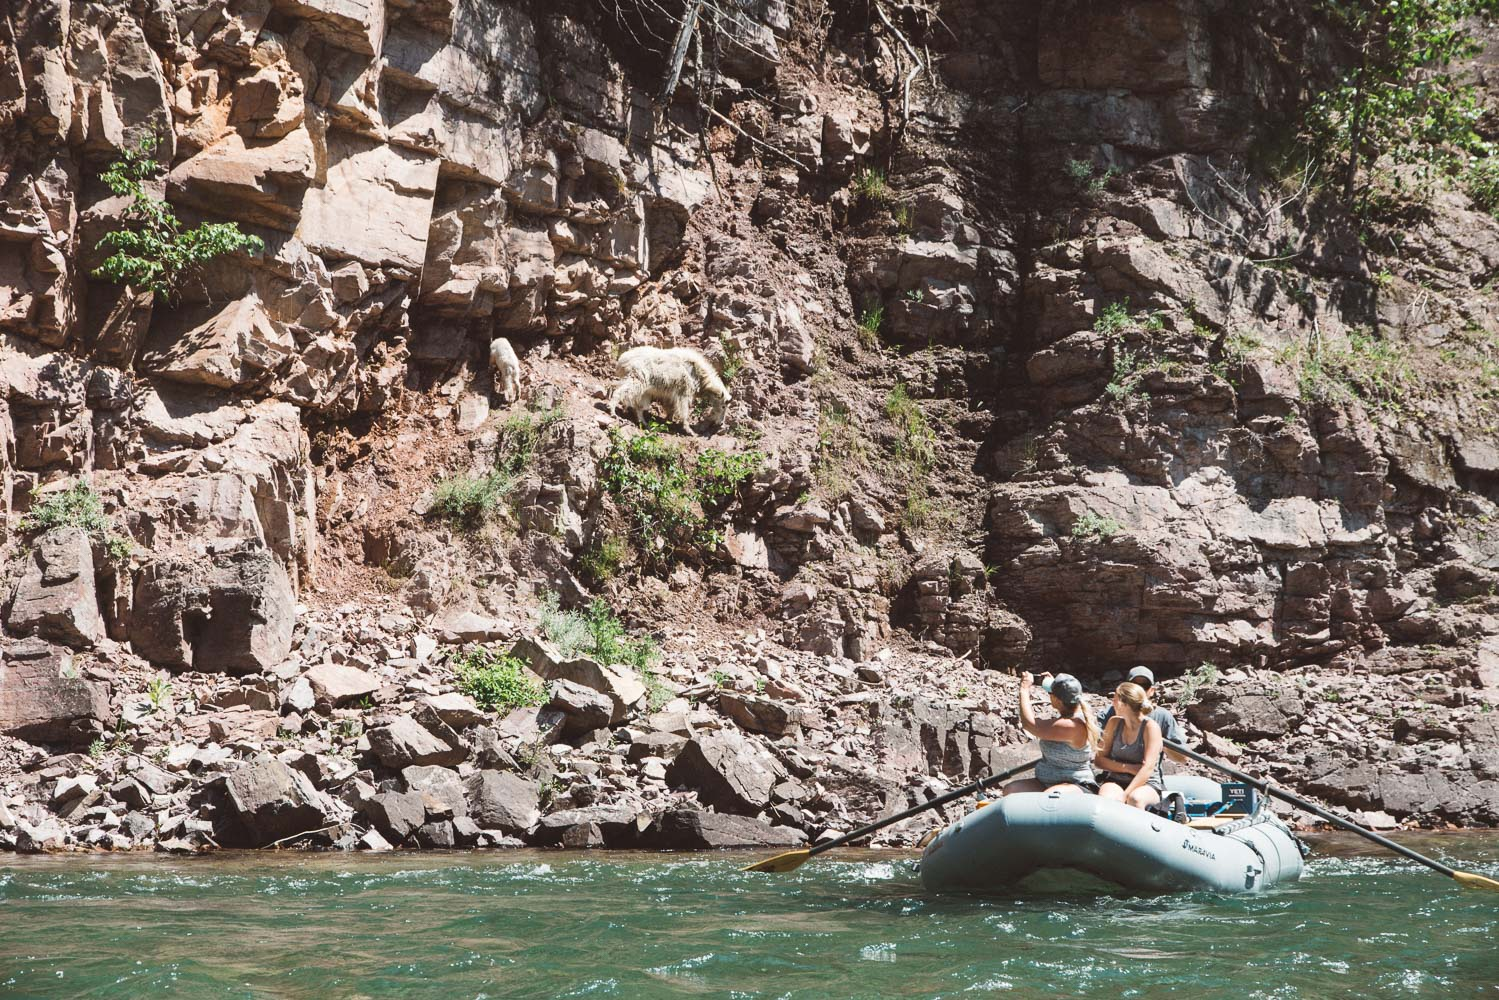 Trip Report: Packrafting the Middle Fork of the Flathead River